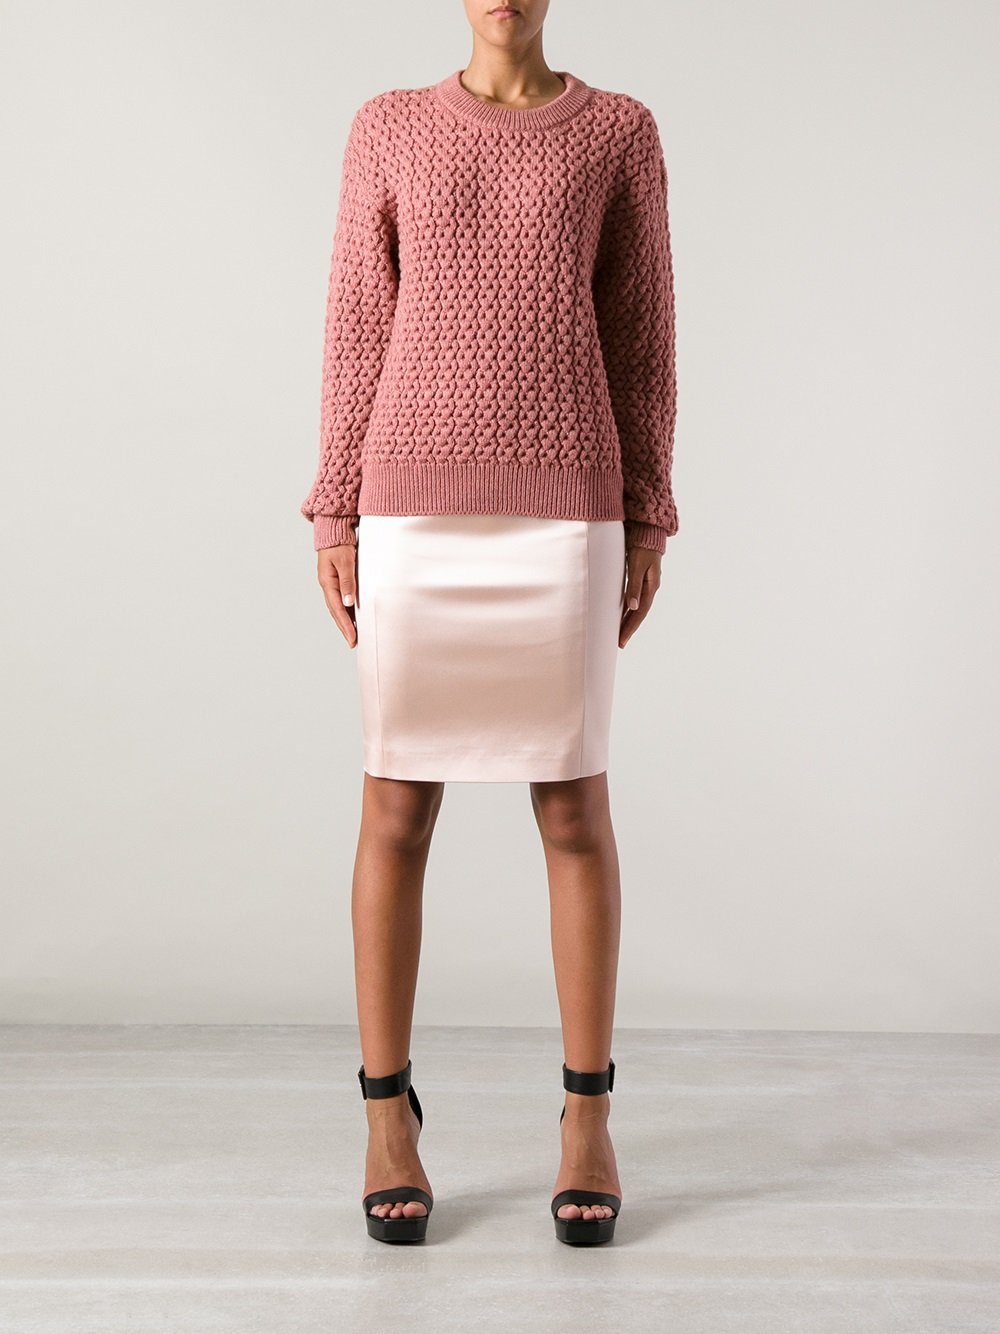 Cedric charlier Satin Pencil Skirt in Pink | Lyst